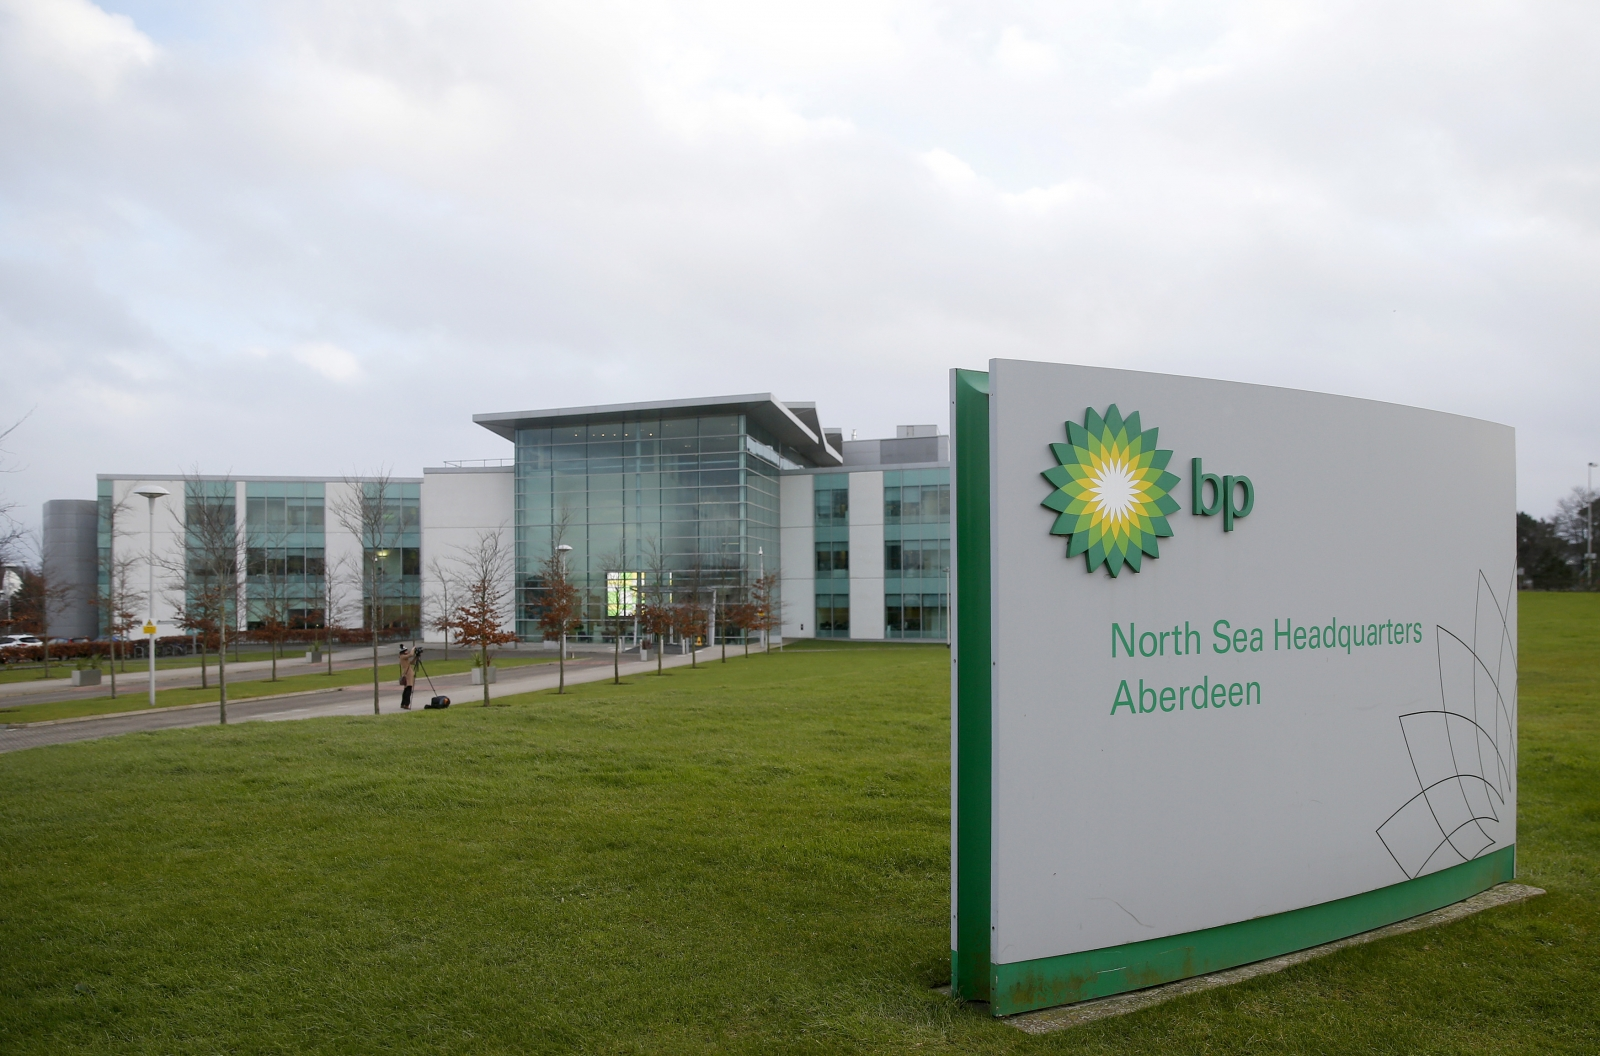 BP's North Sea Headquarters is seen in Aberdeen, Scotland January 15, 2015.